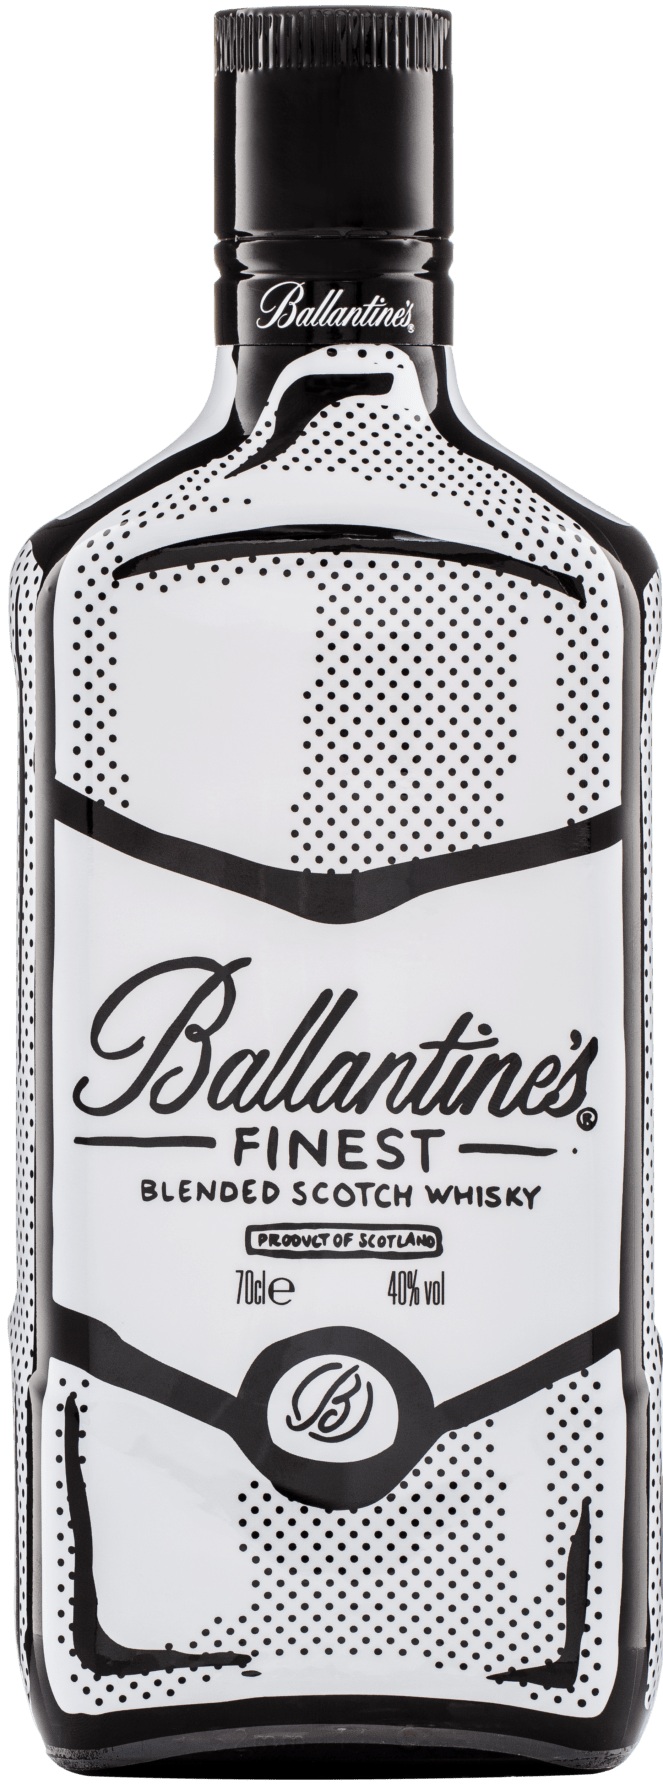 Ballantine's Joshua Vides Limited Edition Bottle